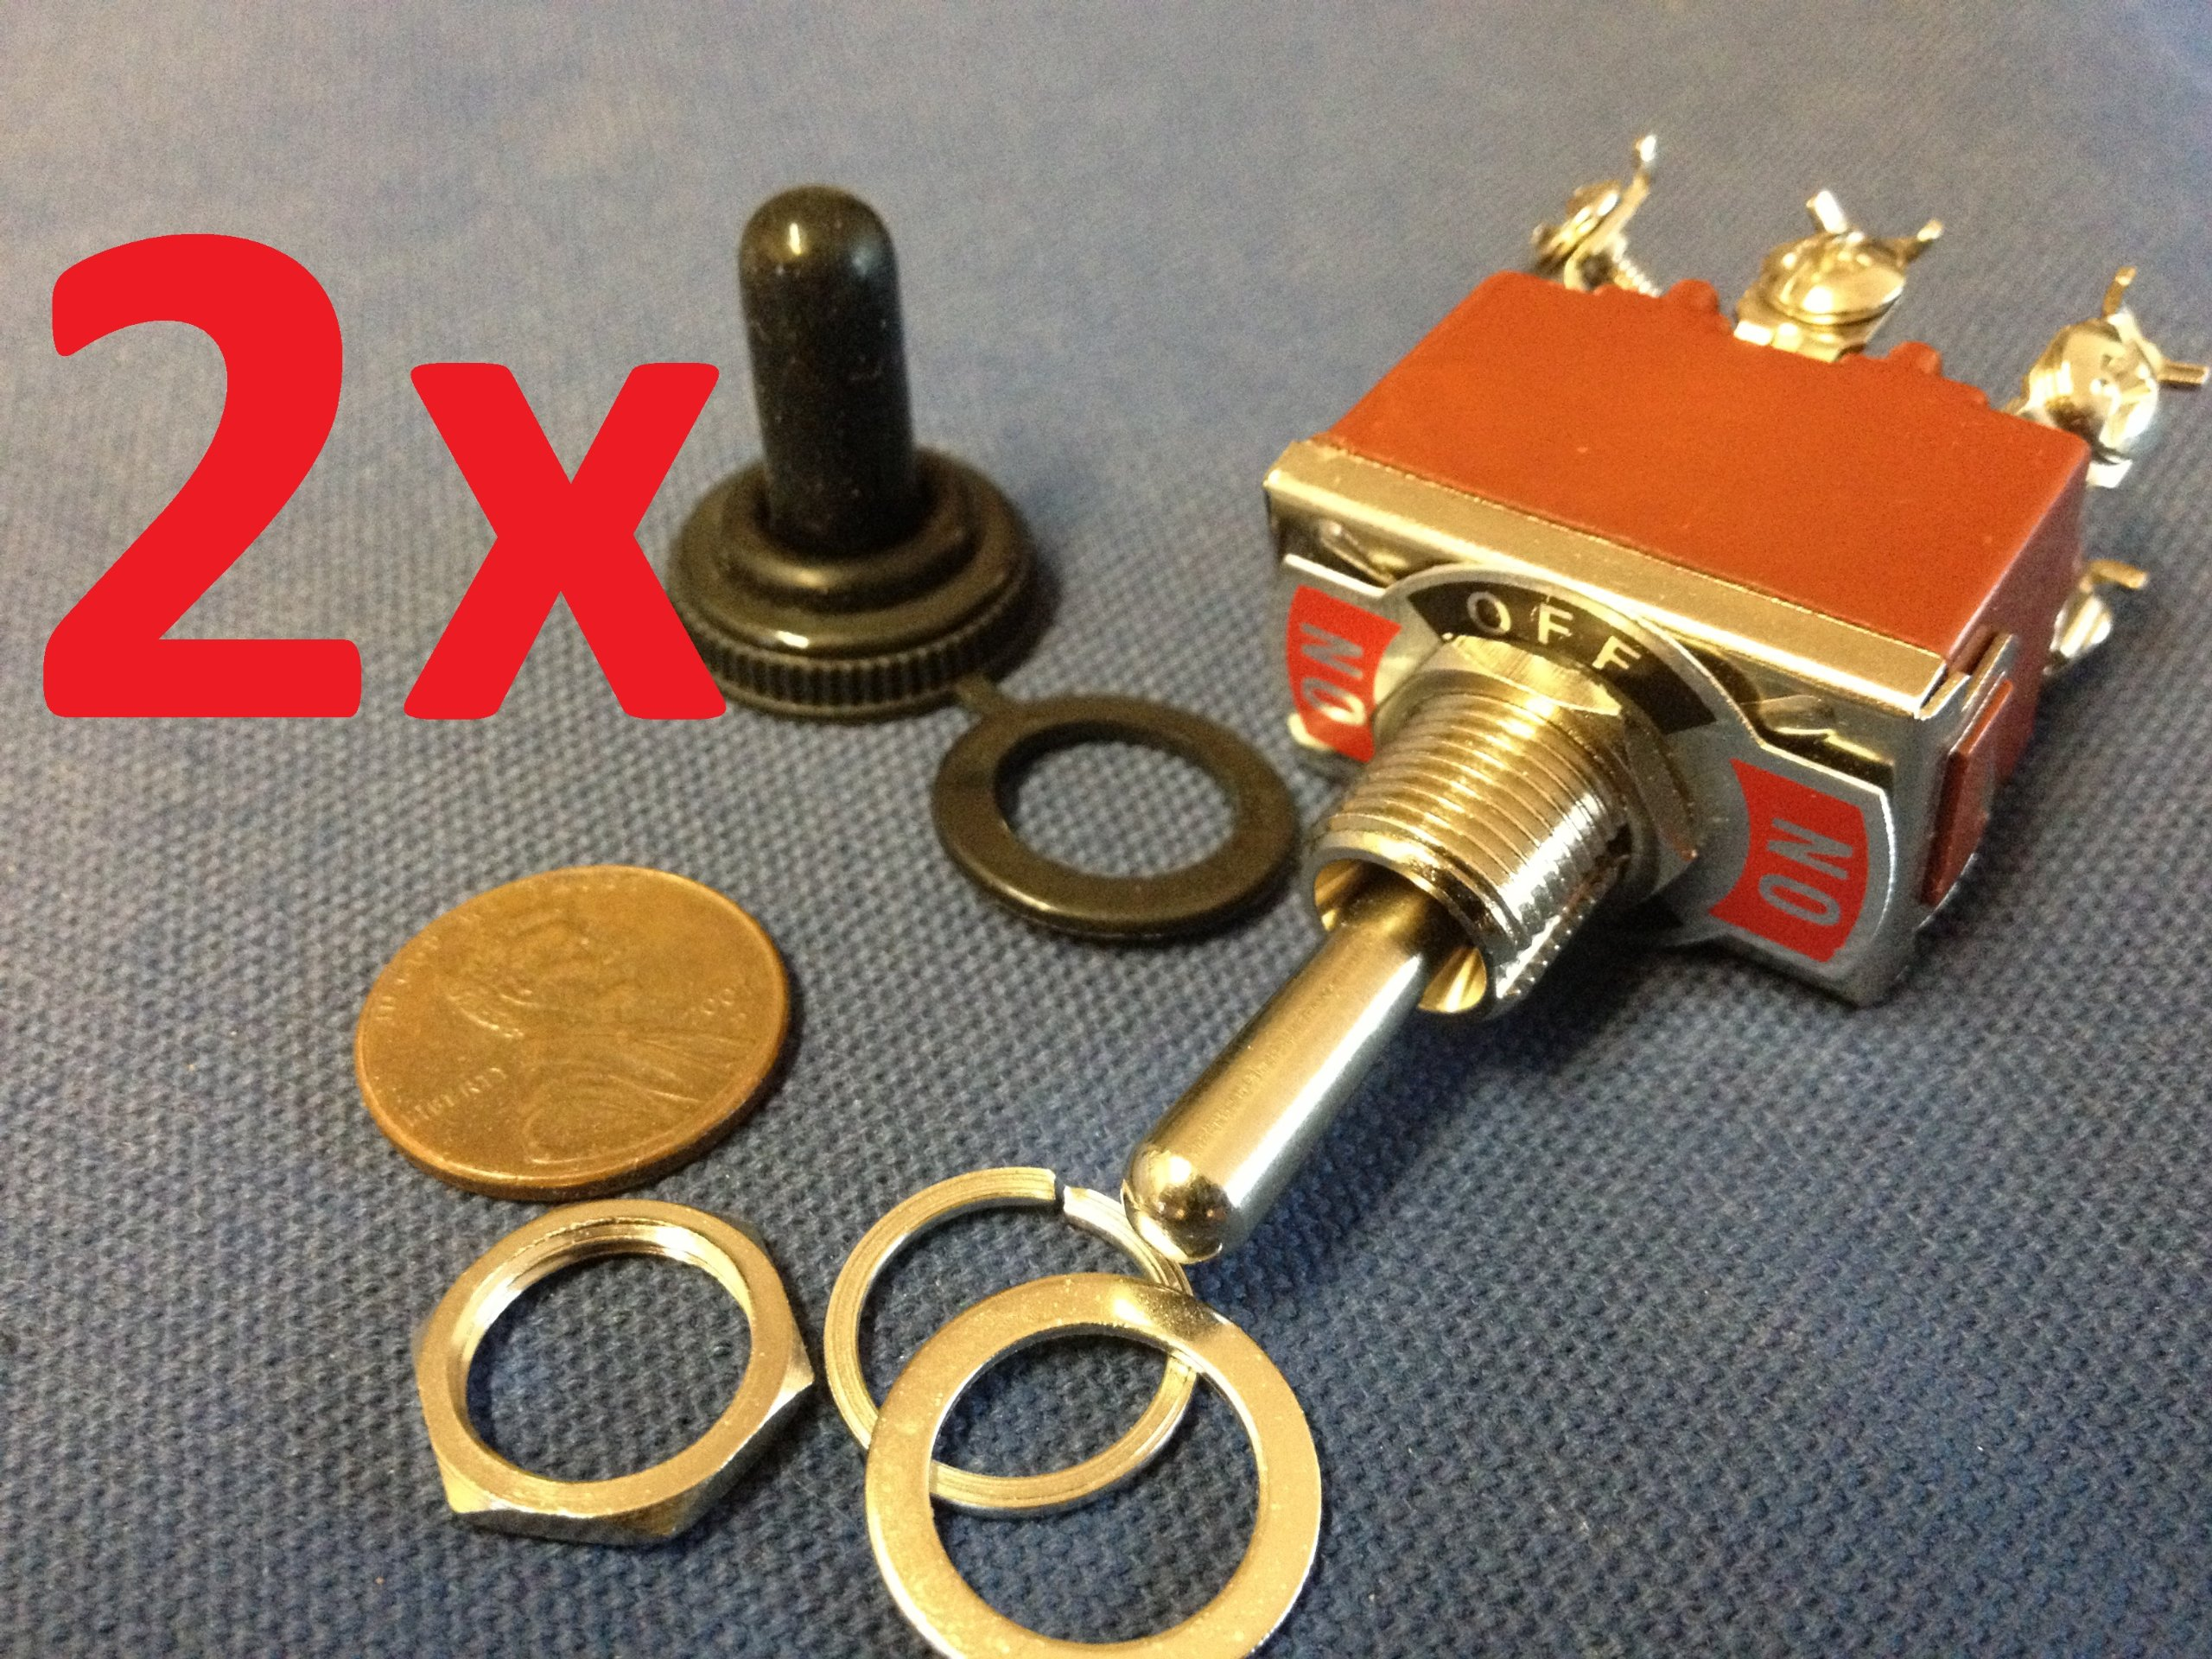 2x Waterproof Dpdt Momentary-off-momentary On/off/on Toggle Switches 15a 1/2